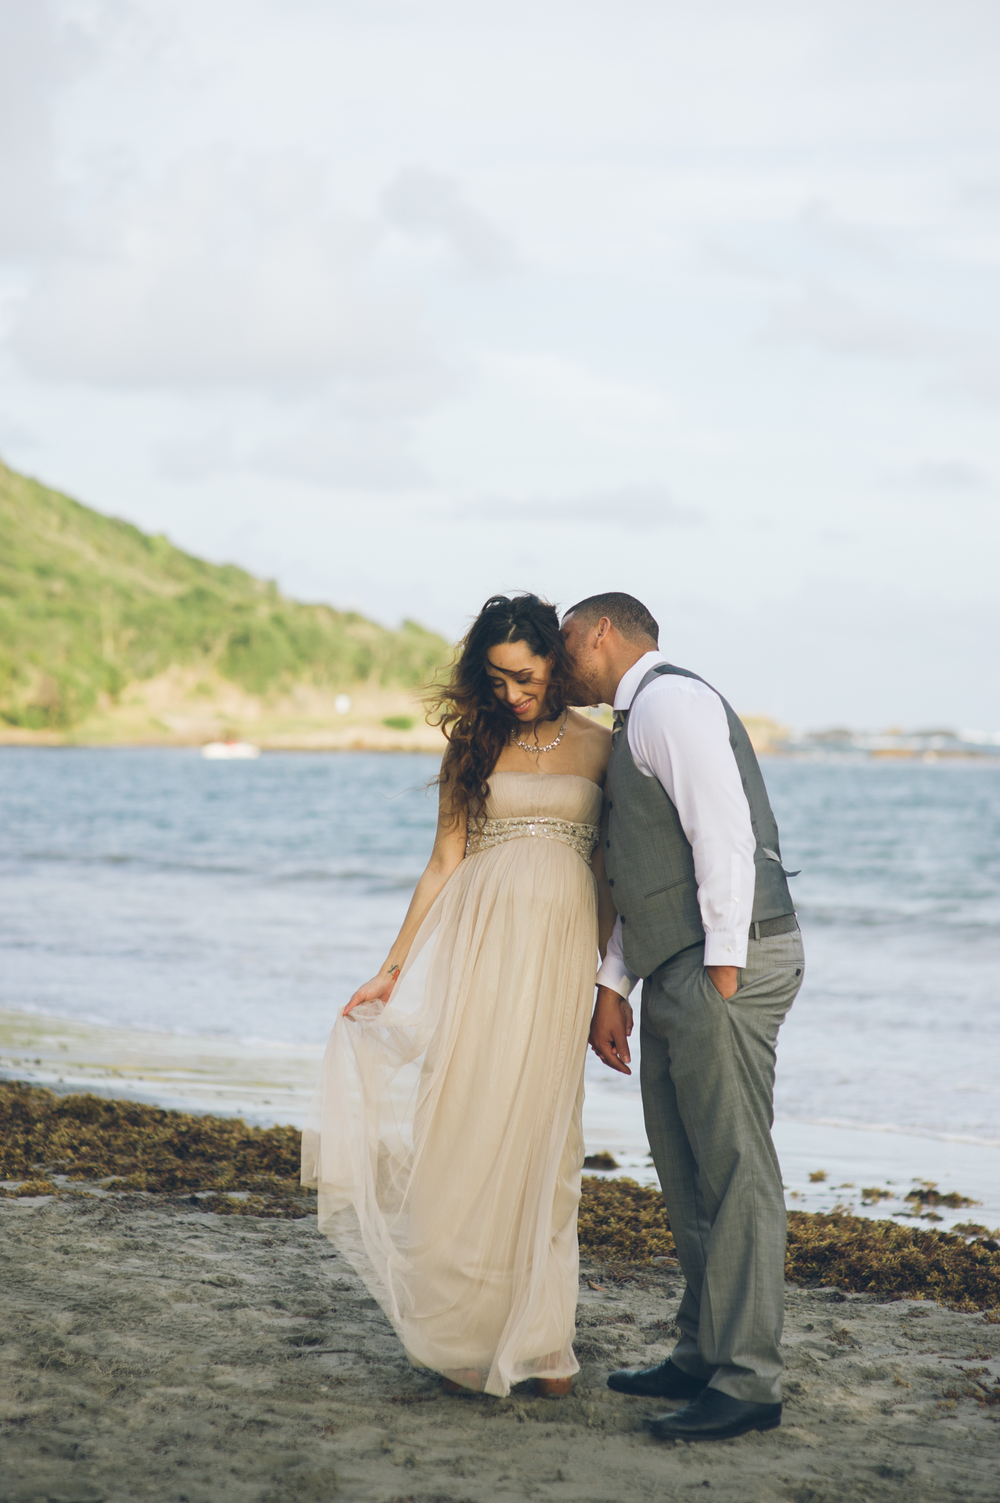 St Lucia Destination Wedding42.jpg